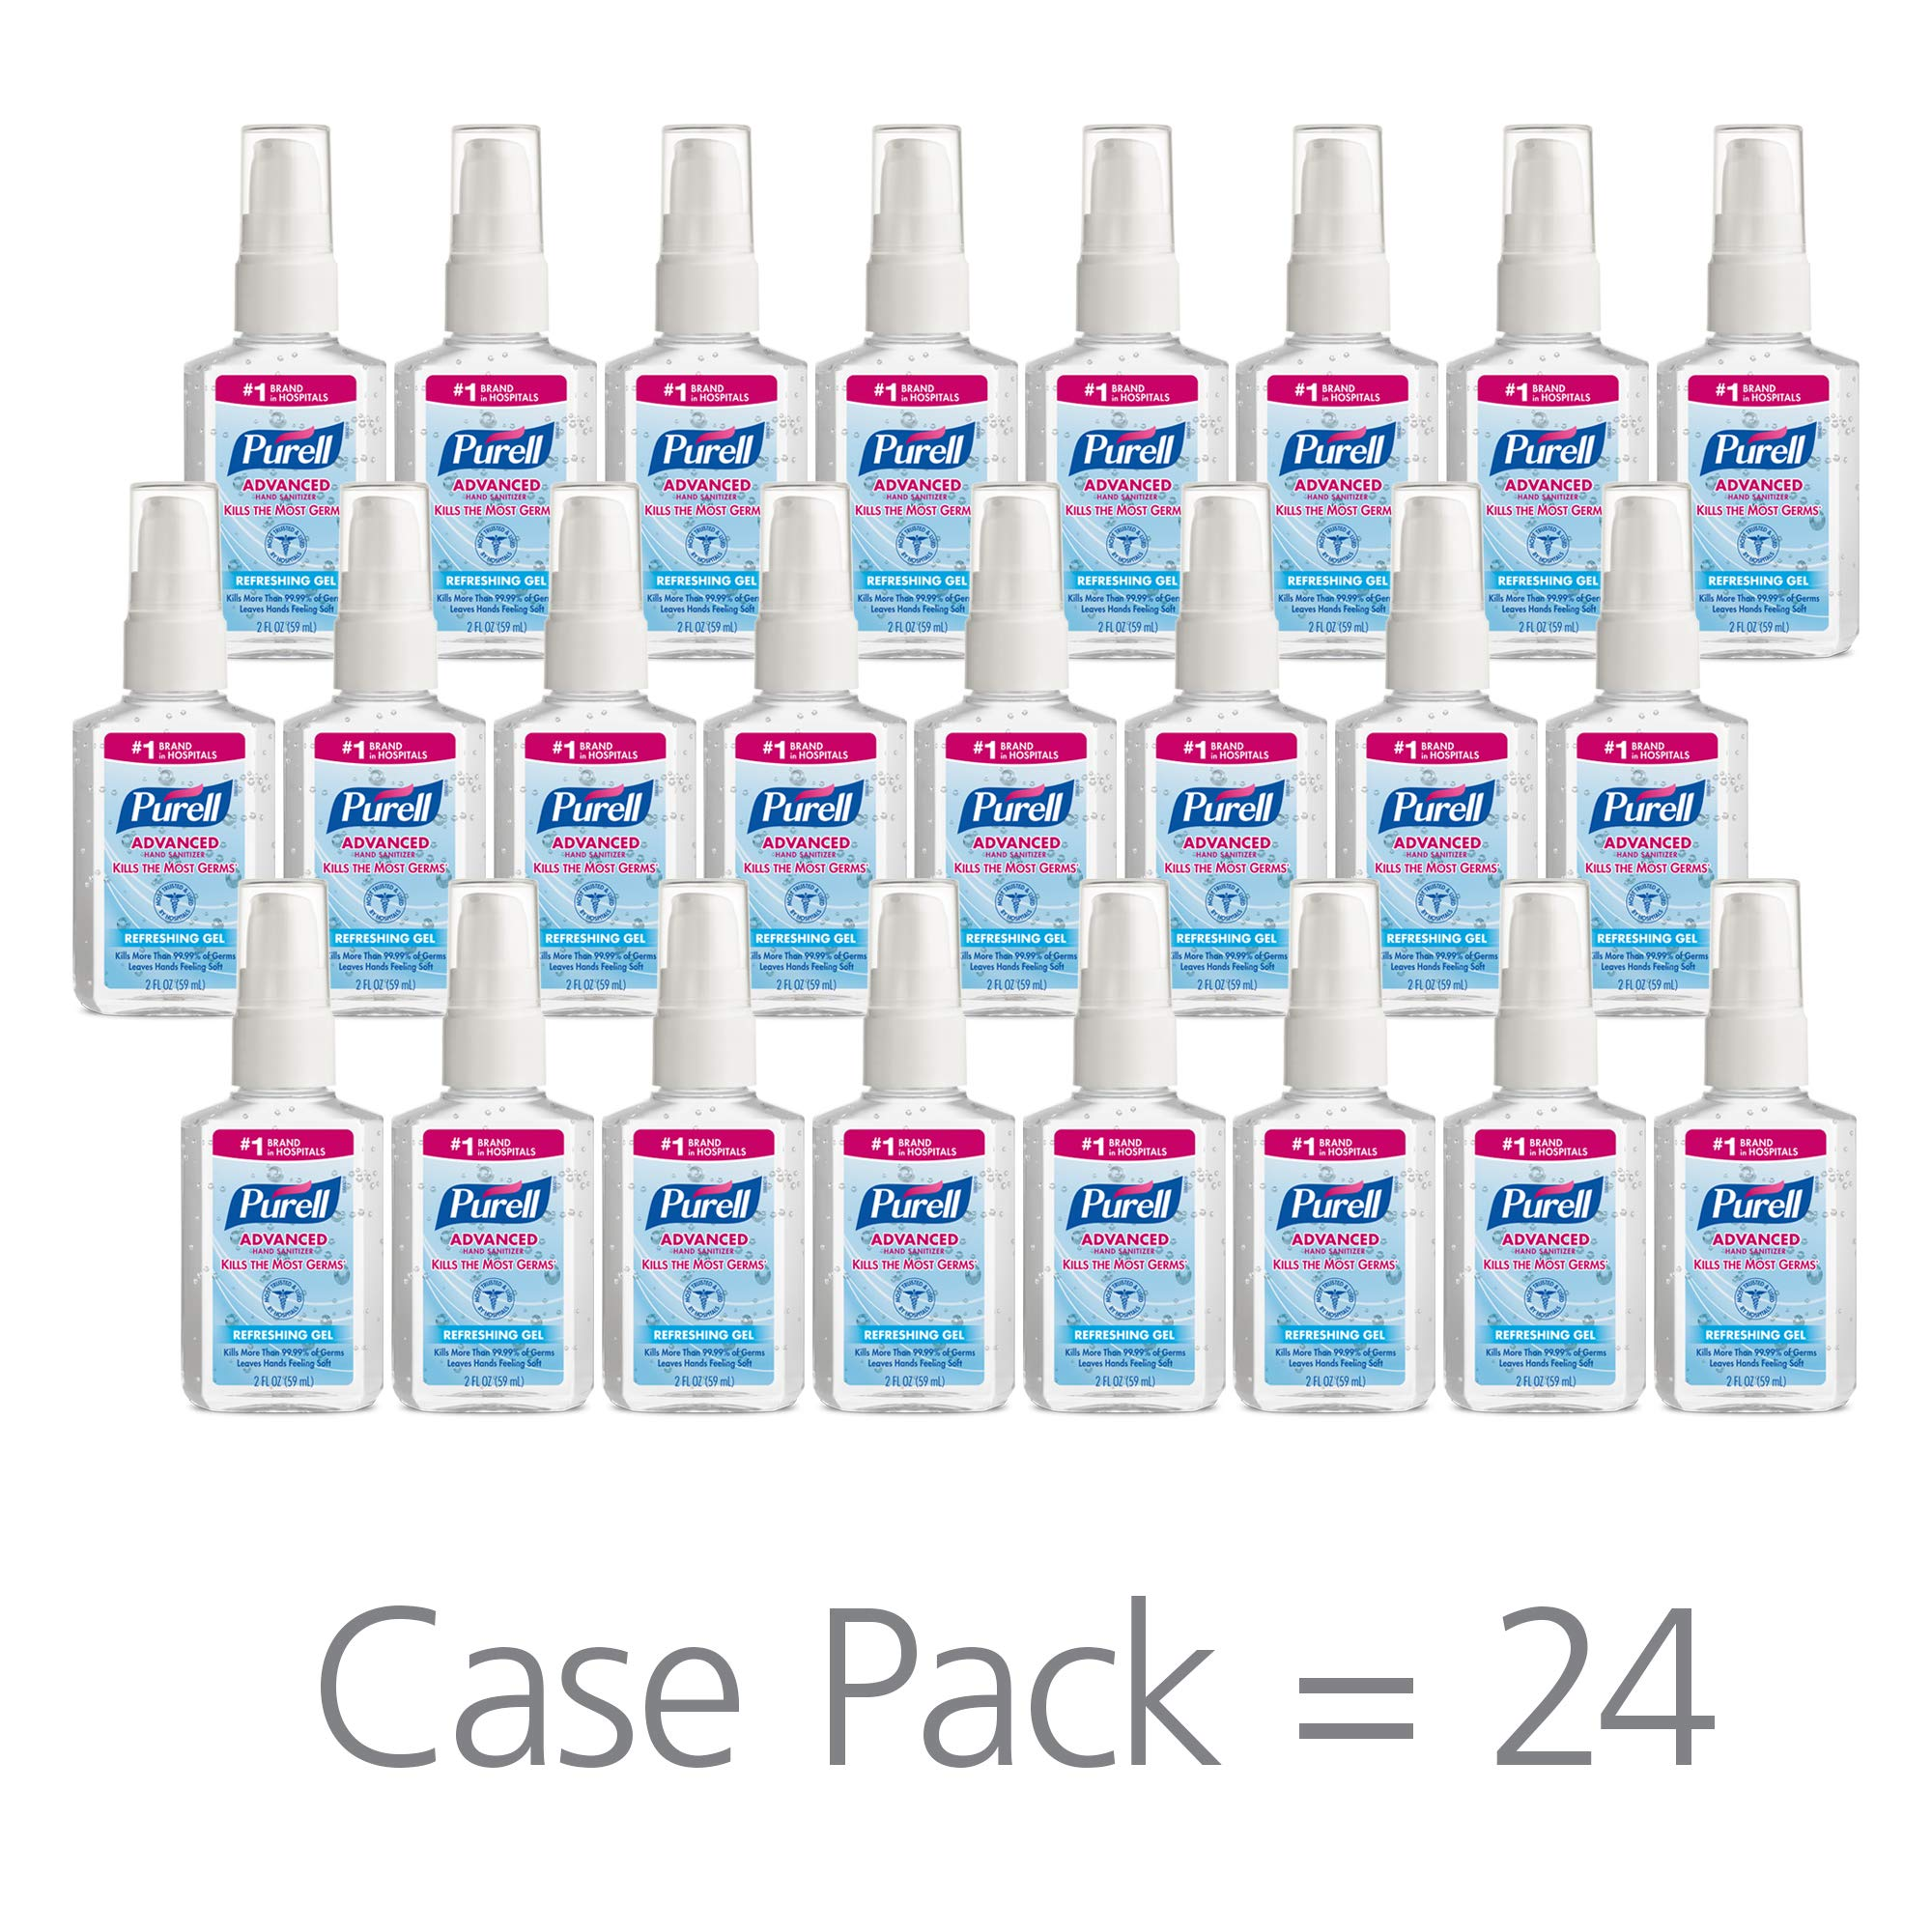 PURELL Advanced Hand Sanitizer, Refreshing Gel, 2 fl oz Sanitizer Portable,Travel Sized Pump Bottles (Case of 24) - 9606-24 by Purell